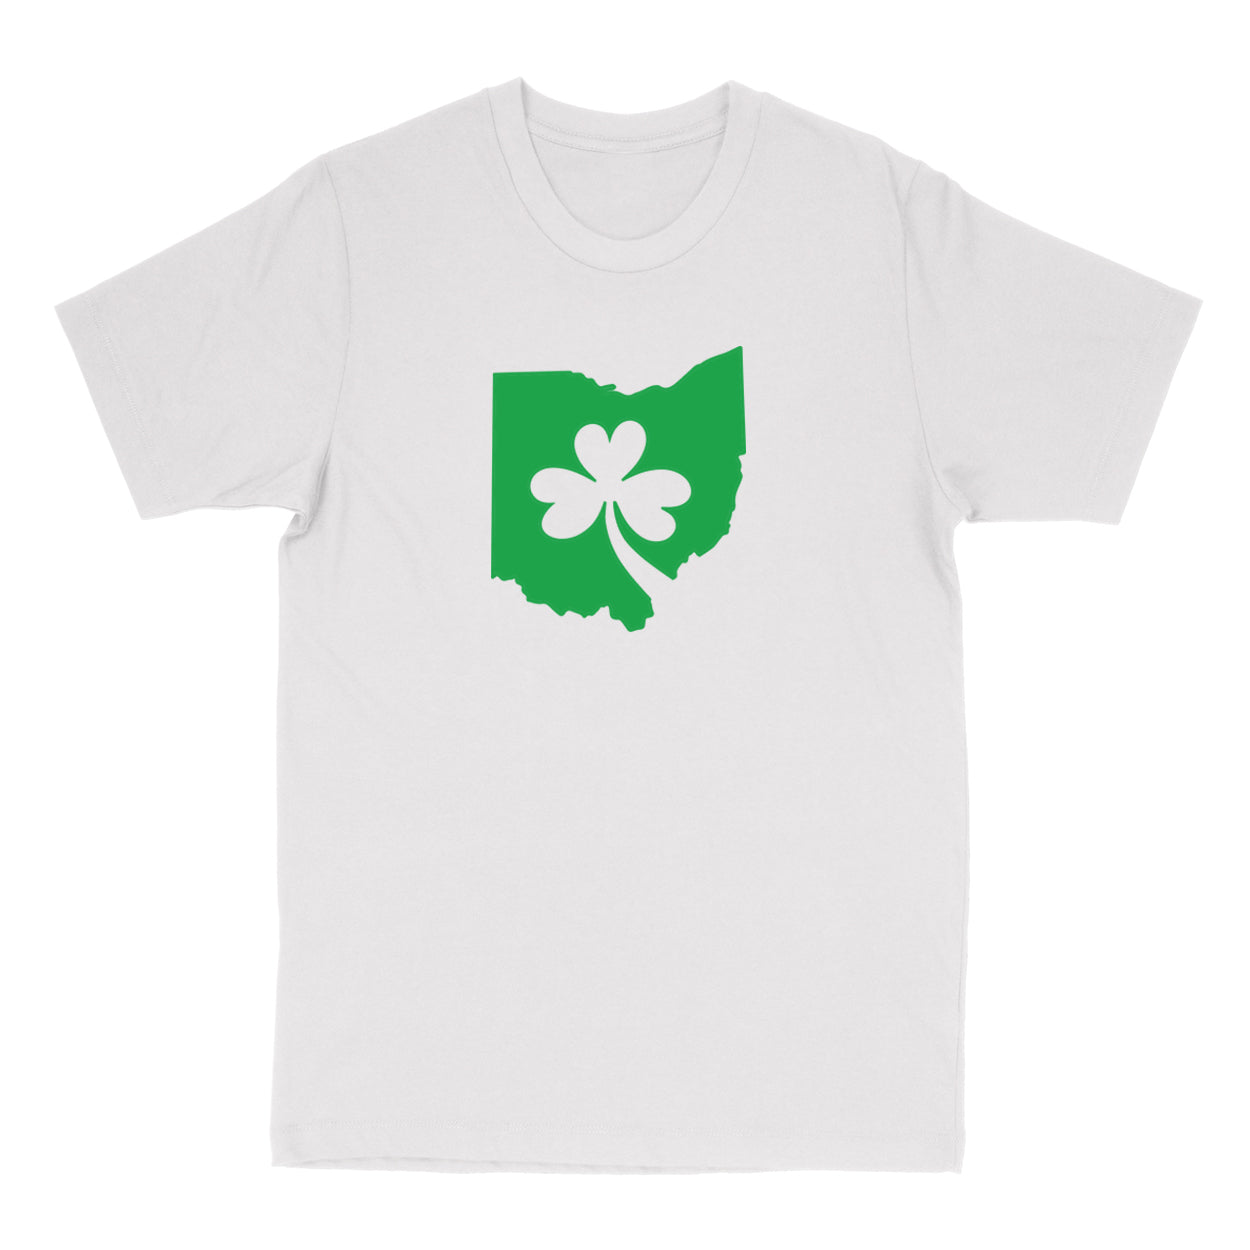 Ohio Shamrock in Green Men's T-shirt - Clothe Ohio - Soft Ohio Shirts